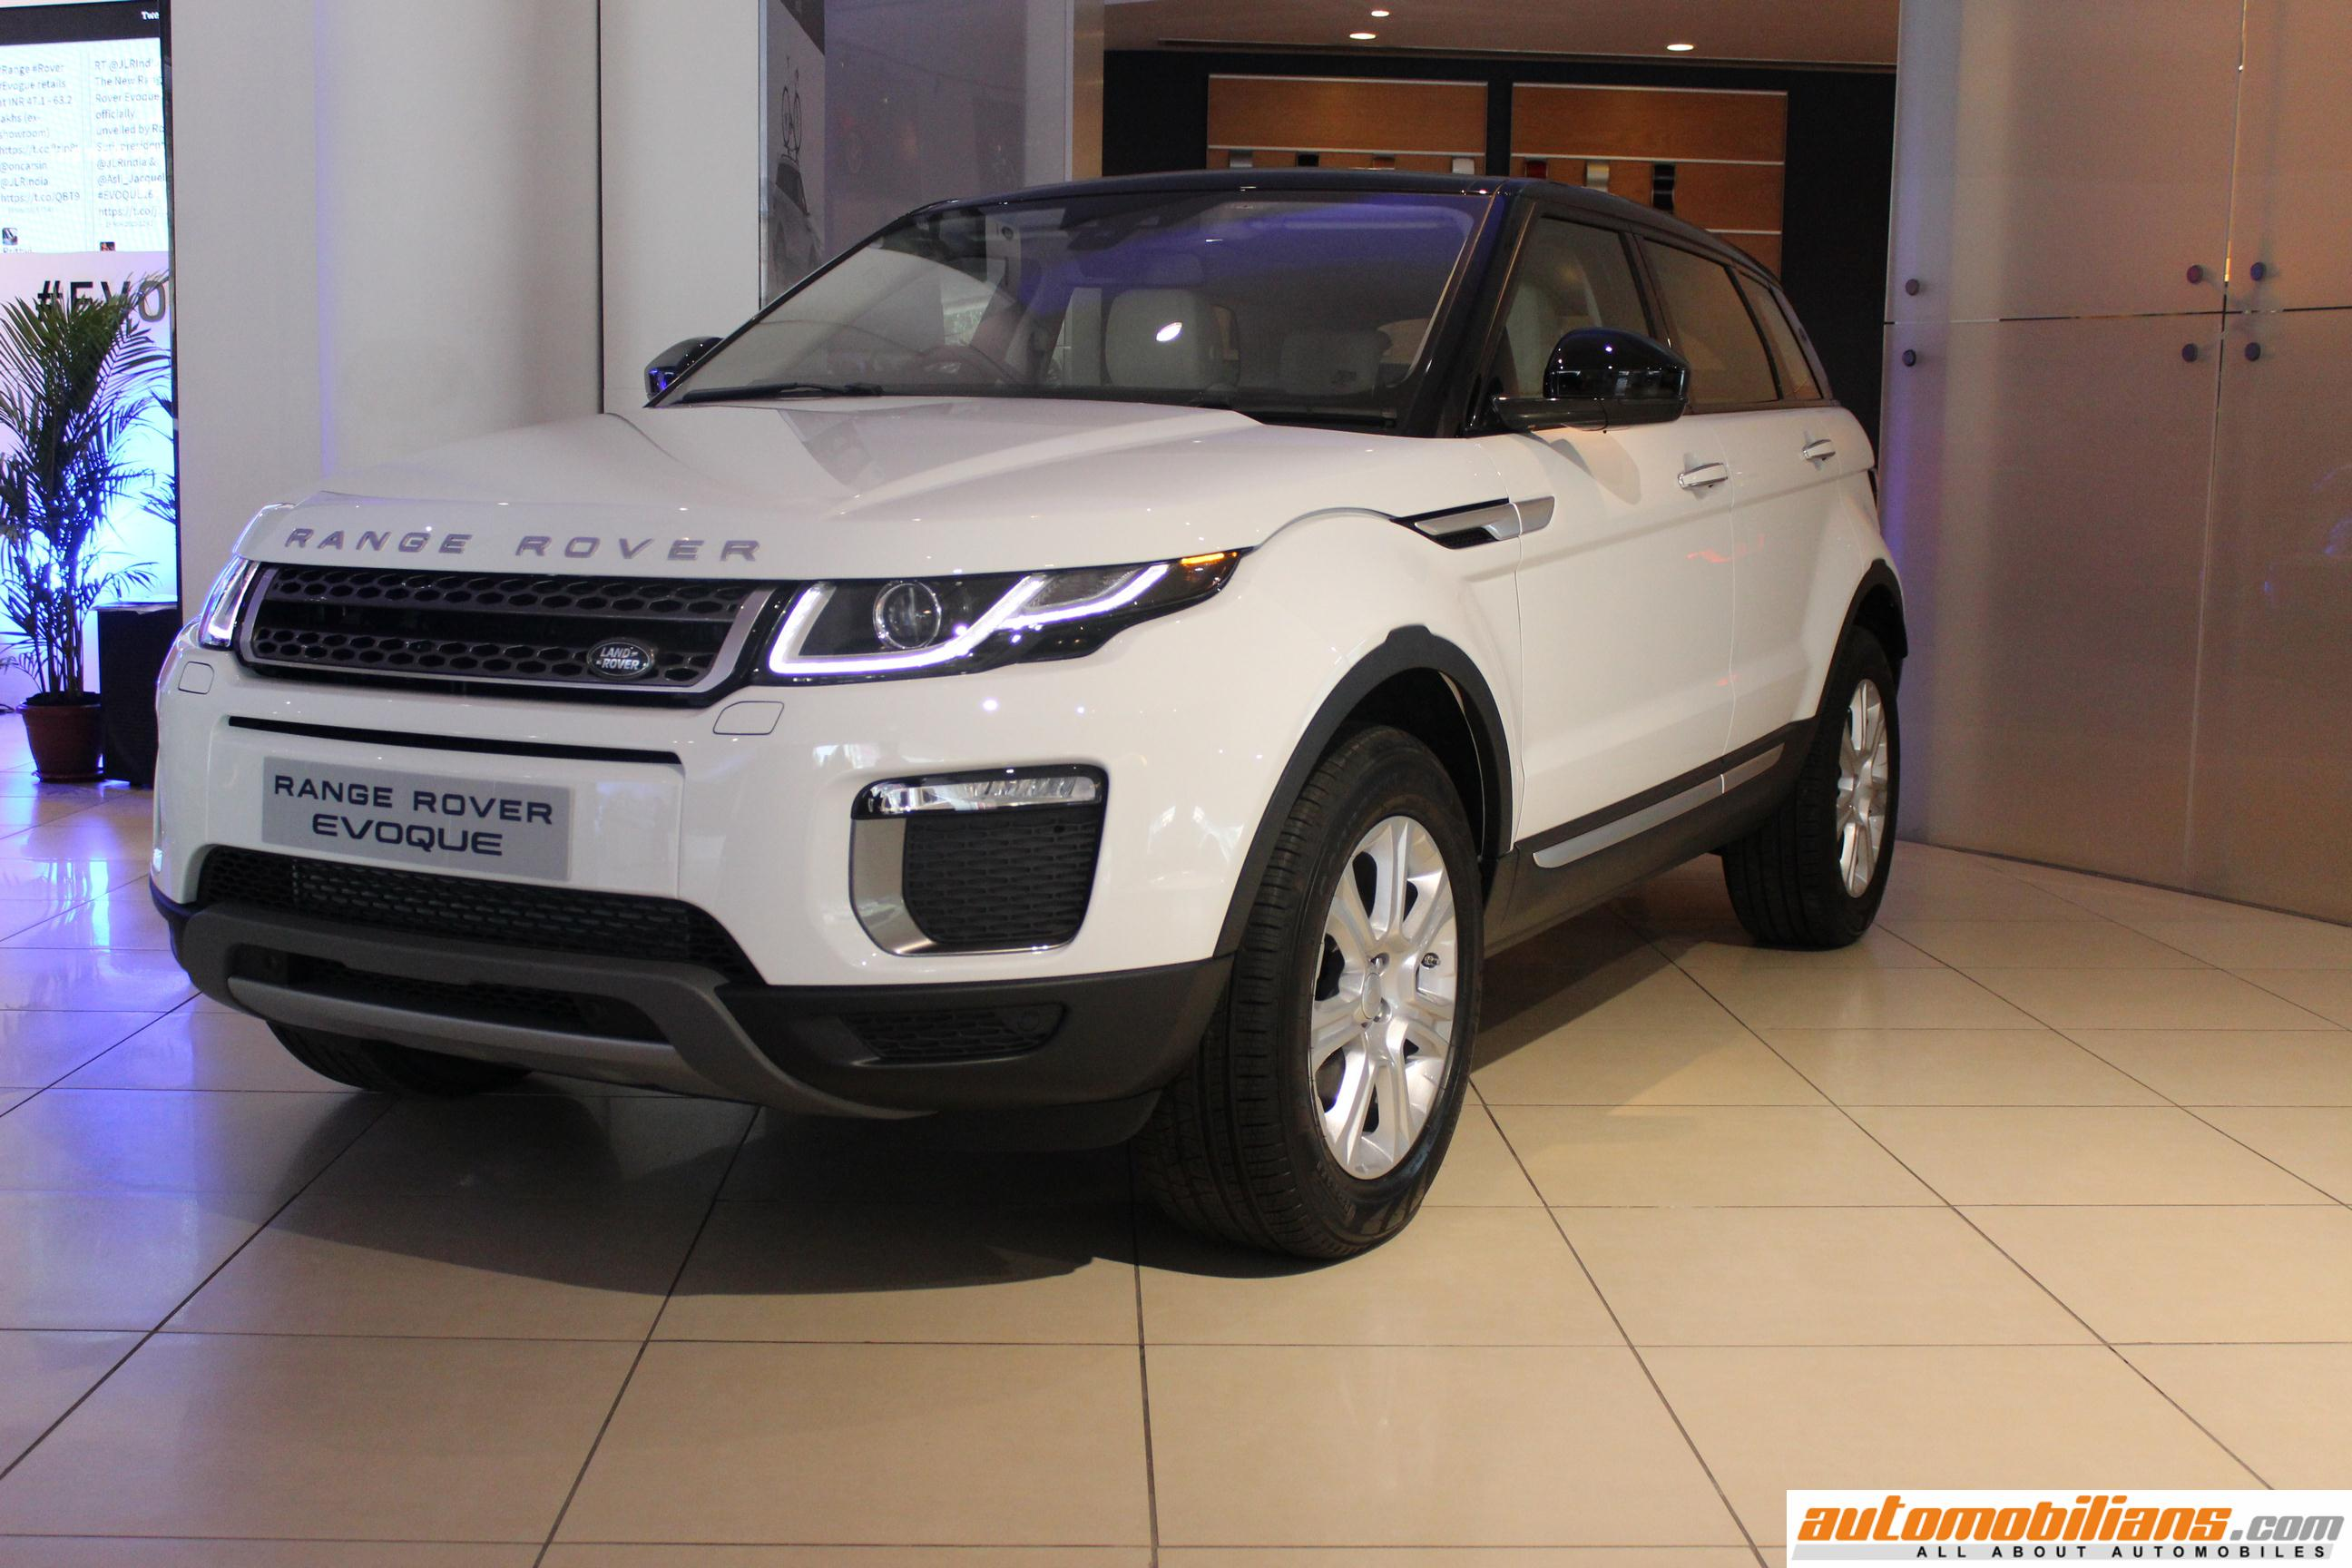 2016 range rover evoque launched in india at rs lakhs range rover evoque evoque 2016. Black Bedroom Furniture Sets. Home Design Ideas